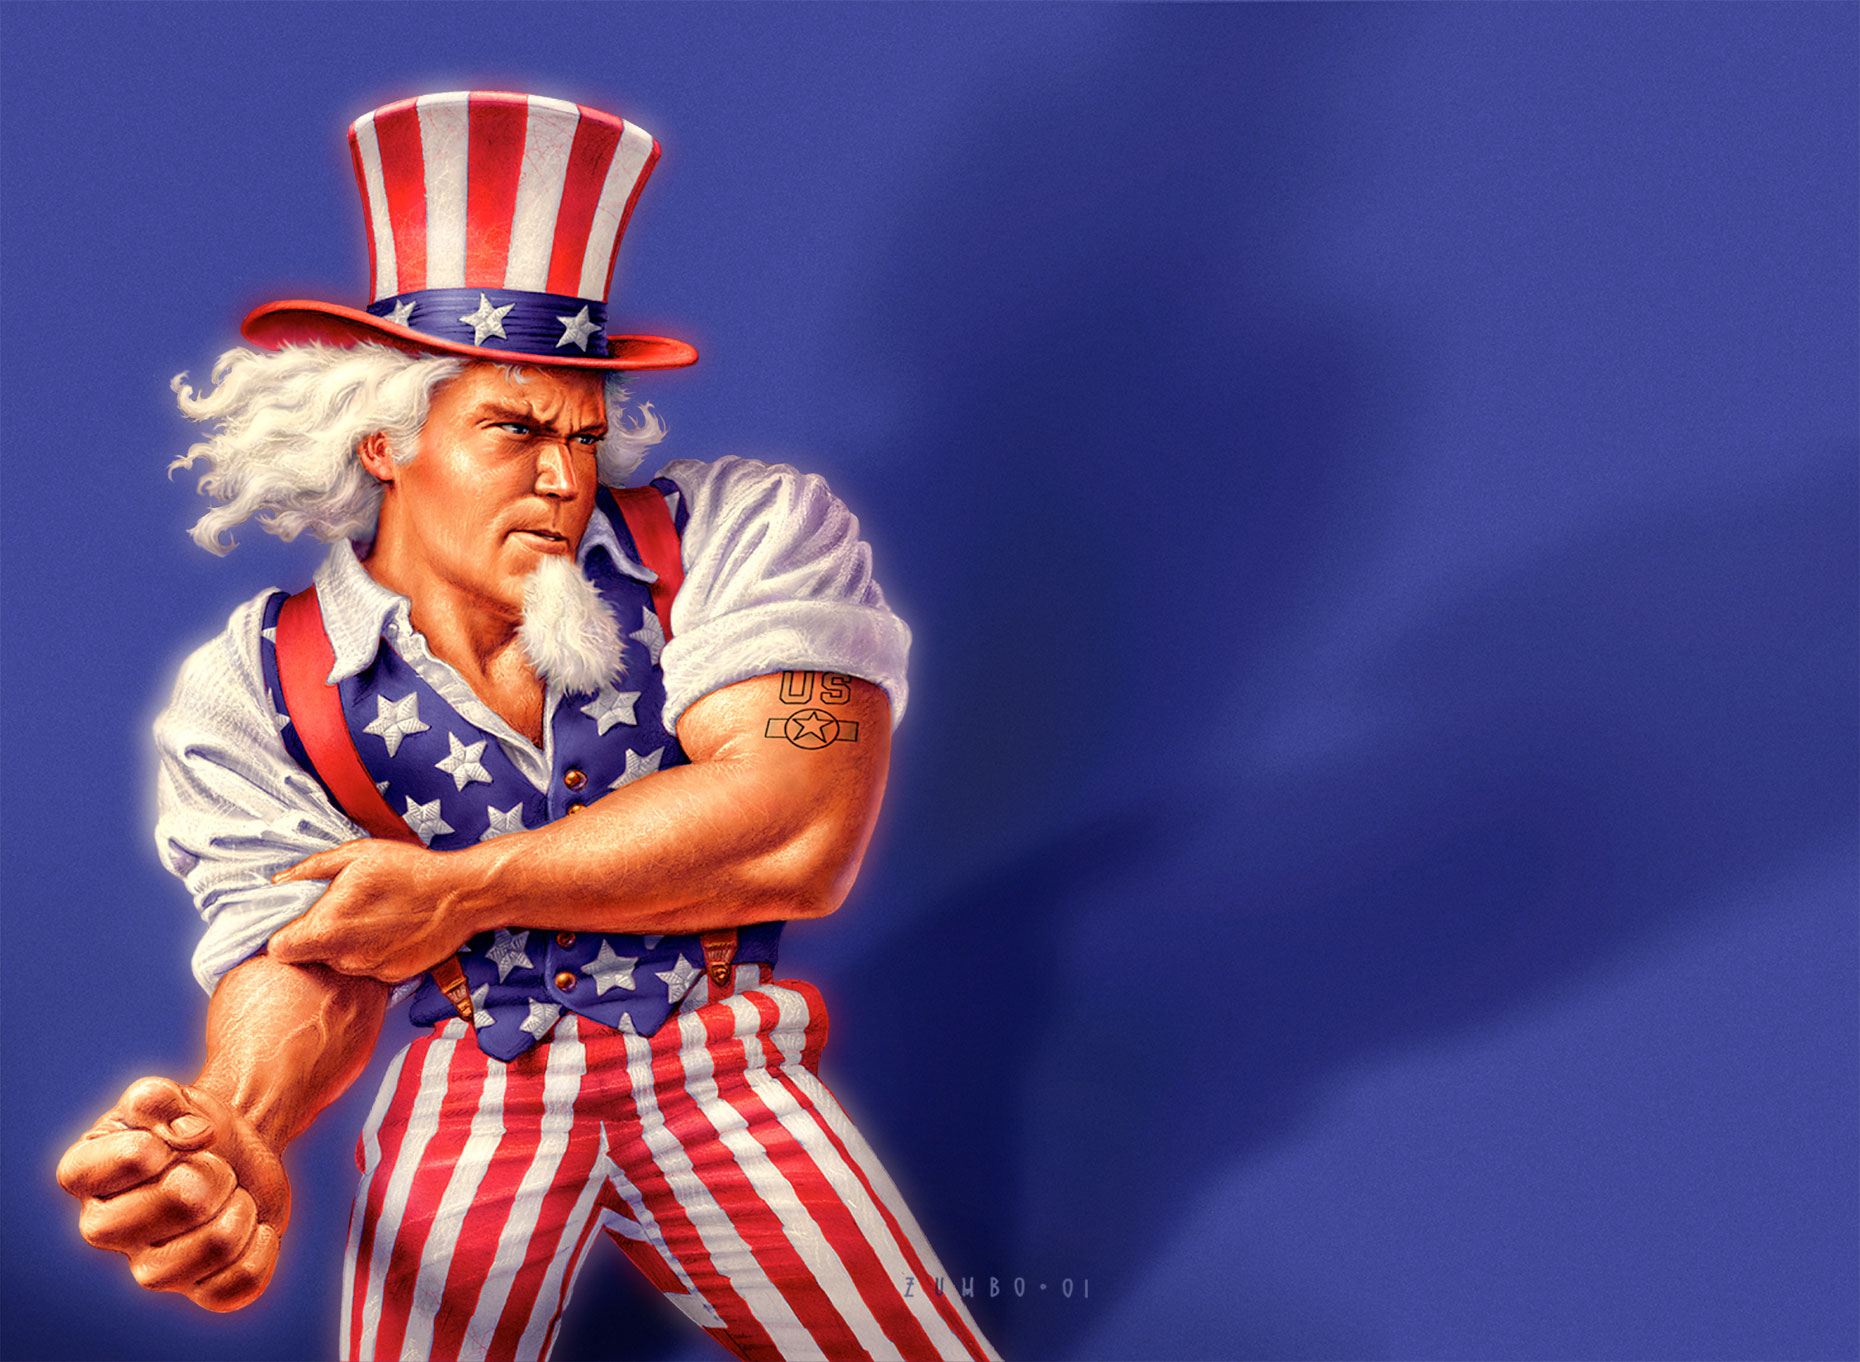 matt_zumbo_parody_people_uncle_sam.jpg